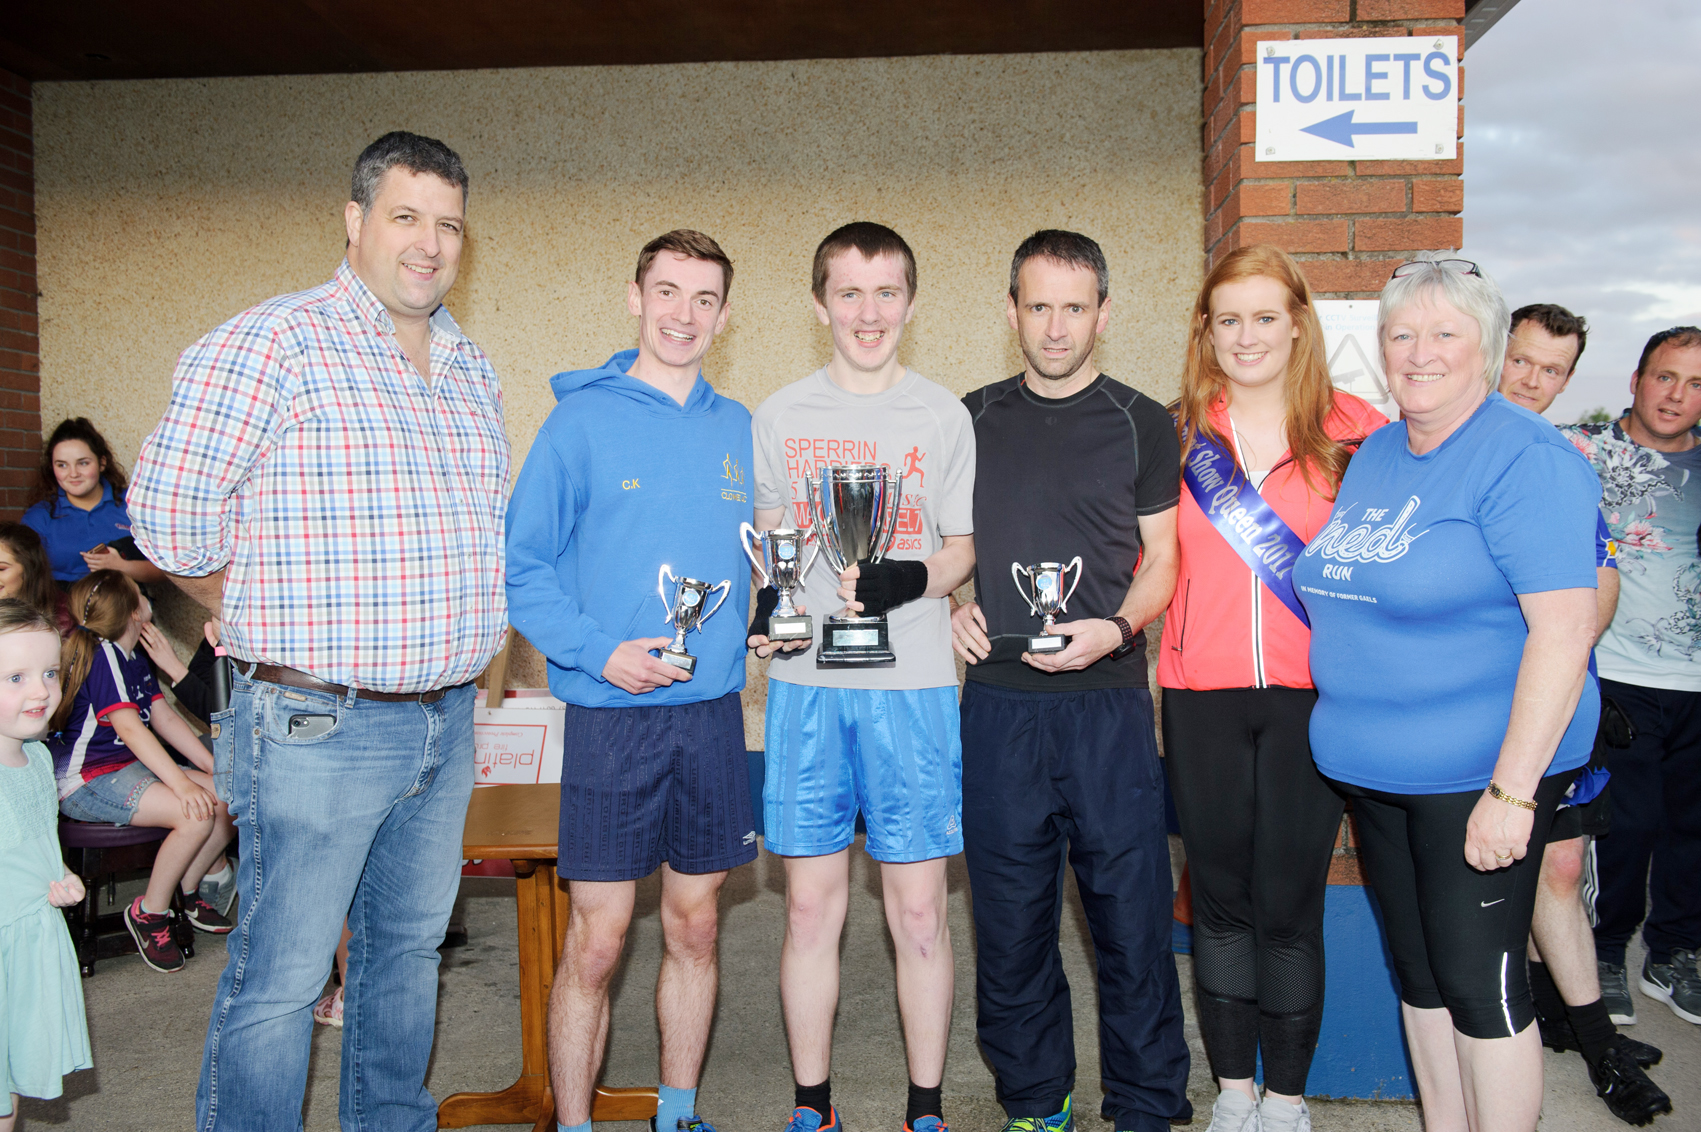 At the presentation of the prizes for The Ned Run were (L-R) Stephen McKenna, Colm Kirk,Clones AC, 2nd, Shane Brady, Clones AC, winner, Ciaran Sherlock, Monaghan Town Runners, 3rd, Shauna McAree, Tydavnet Show Queen and Noeleen Boylan. ©Rory Geary/The Northern Standard